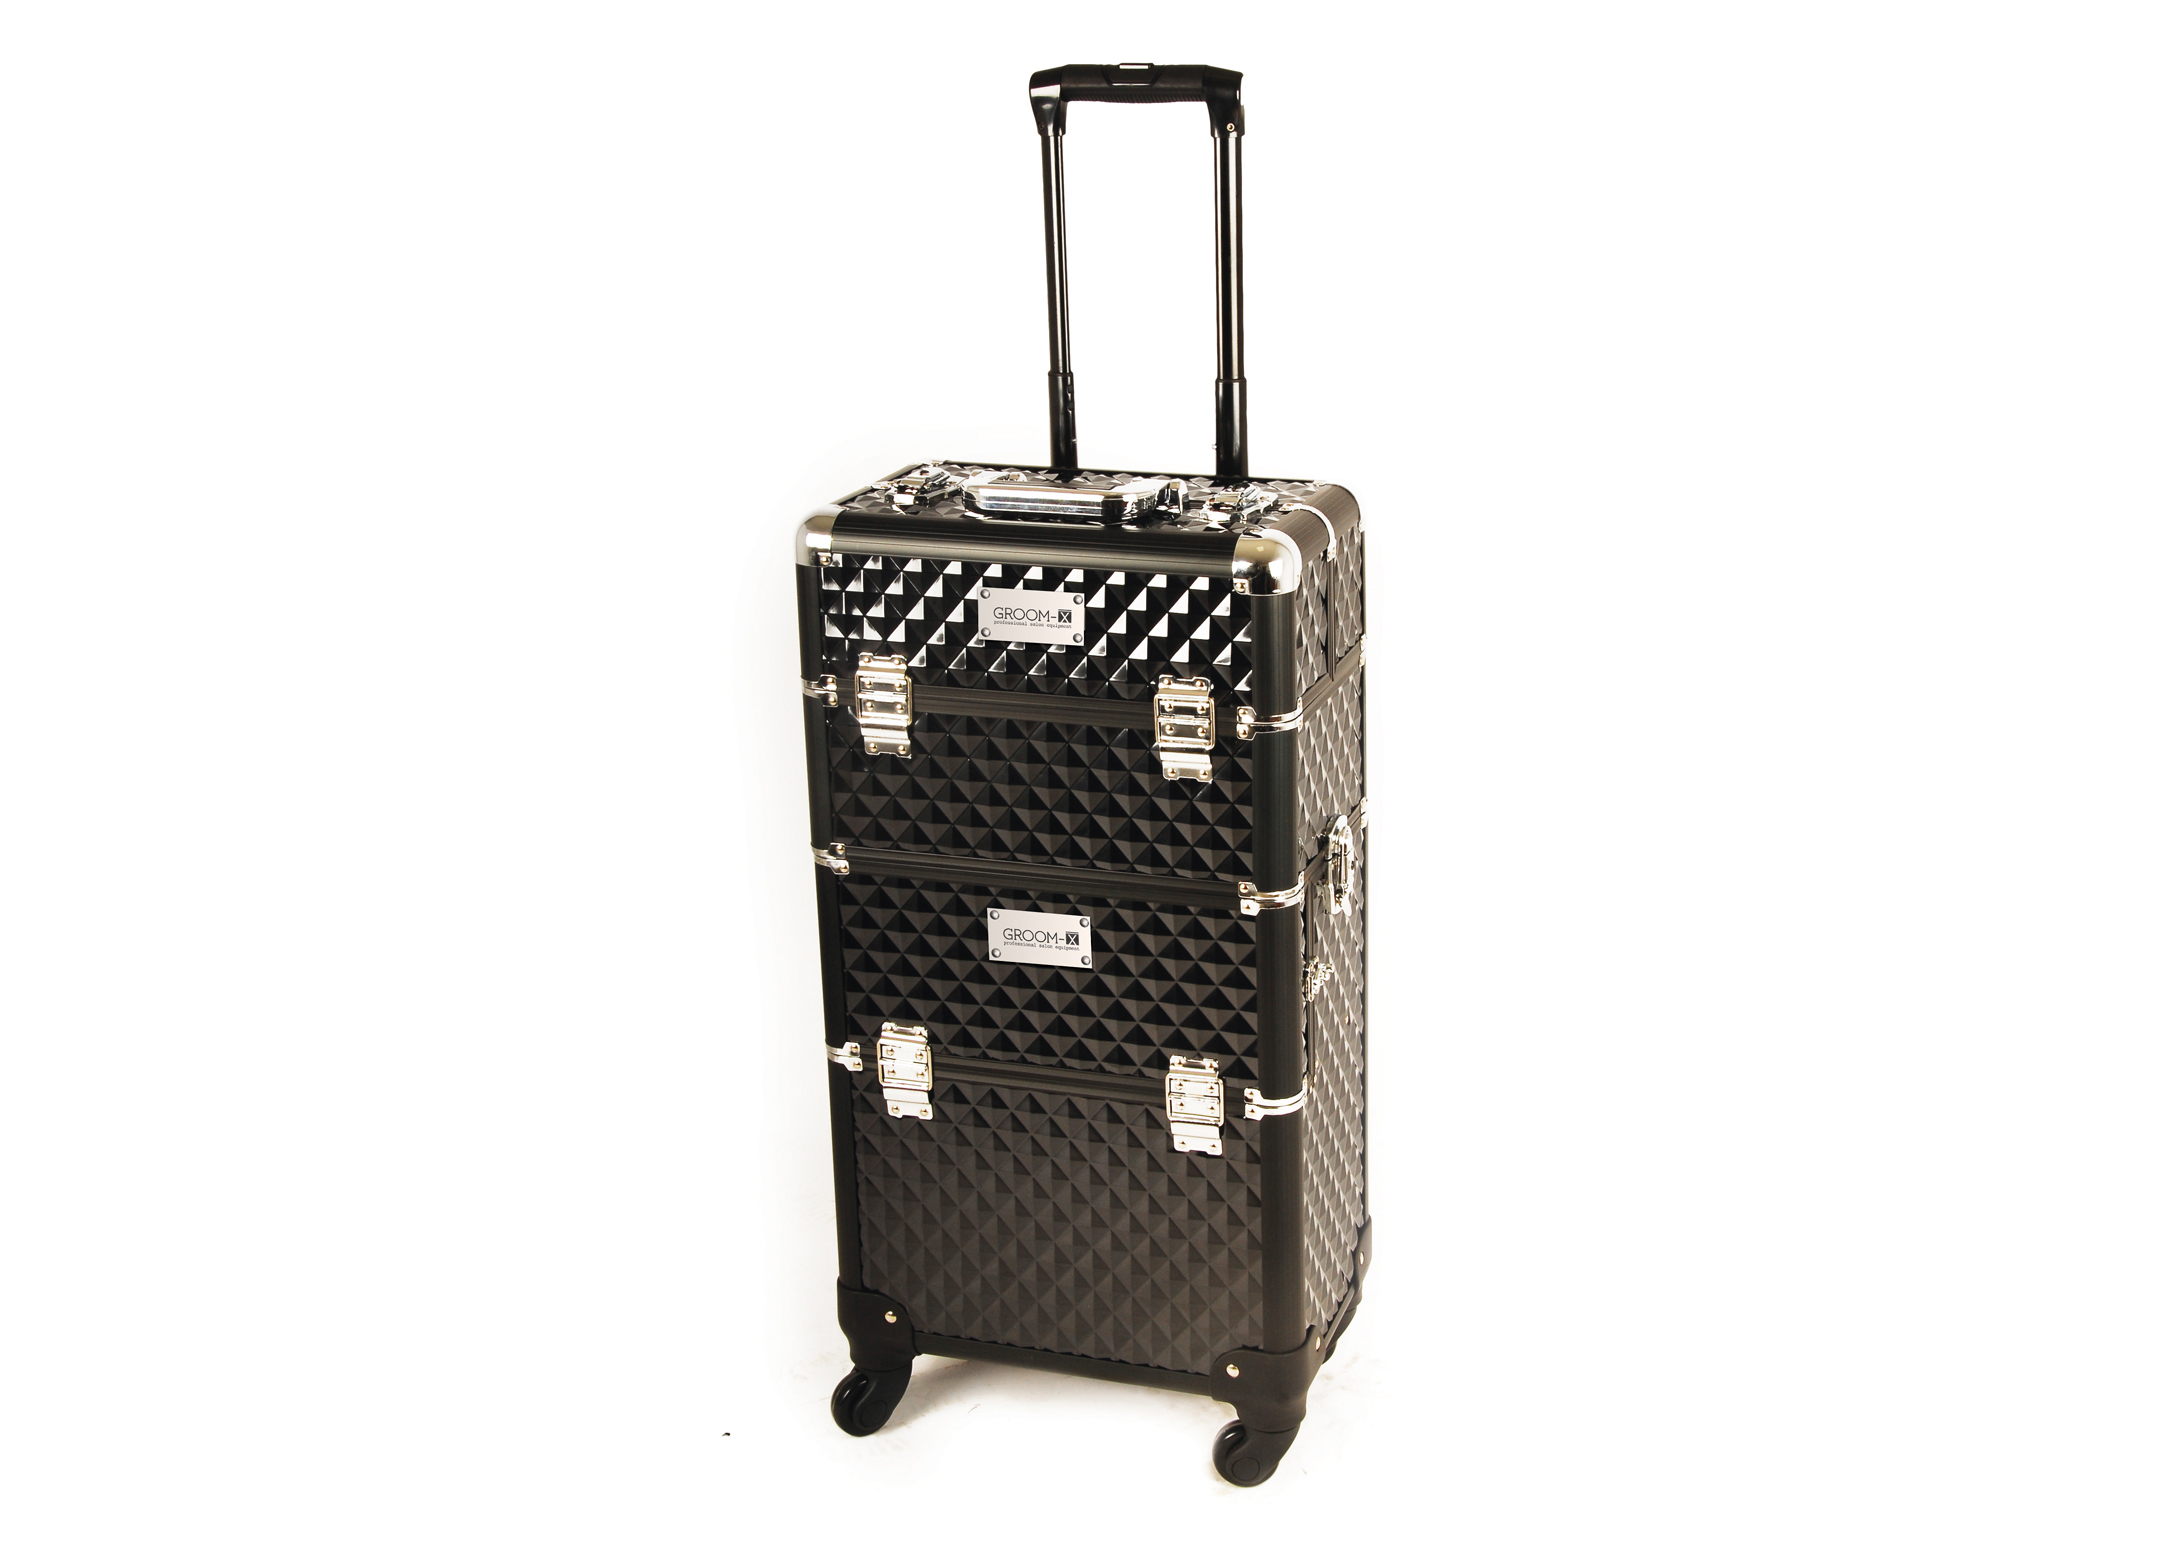 Groom-X Grooming Case XL 2 in one with 4 Wheels and Telescopic Handle with ABS Panel Black